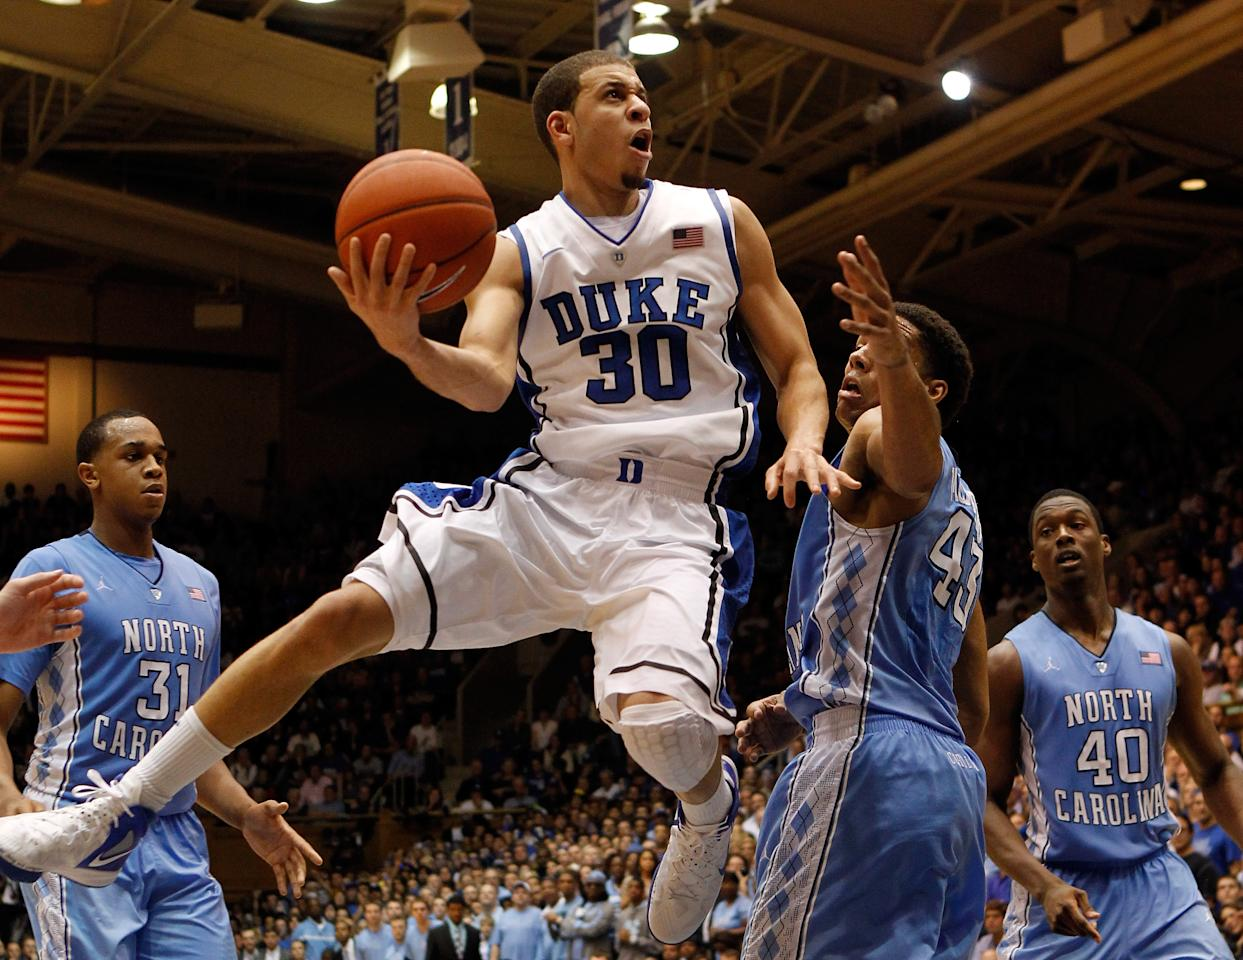 DURHAM, NC - MARCH 03:  Seth Curry #30 of the Duke Blue Devils drives to the basket on James Michael McAdoo #43 of the North Carolina Tar Heels during their game at Cameron Indoor Stadium on March 3, 2012 in Durham, North Carolina.  (Photo by Streeter Lecka/Getty Images)